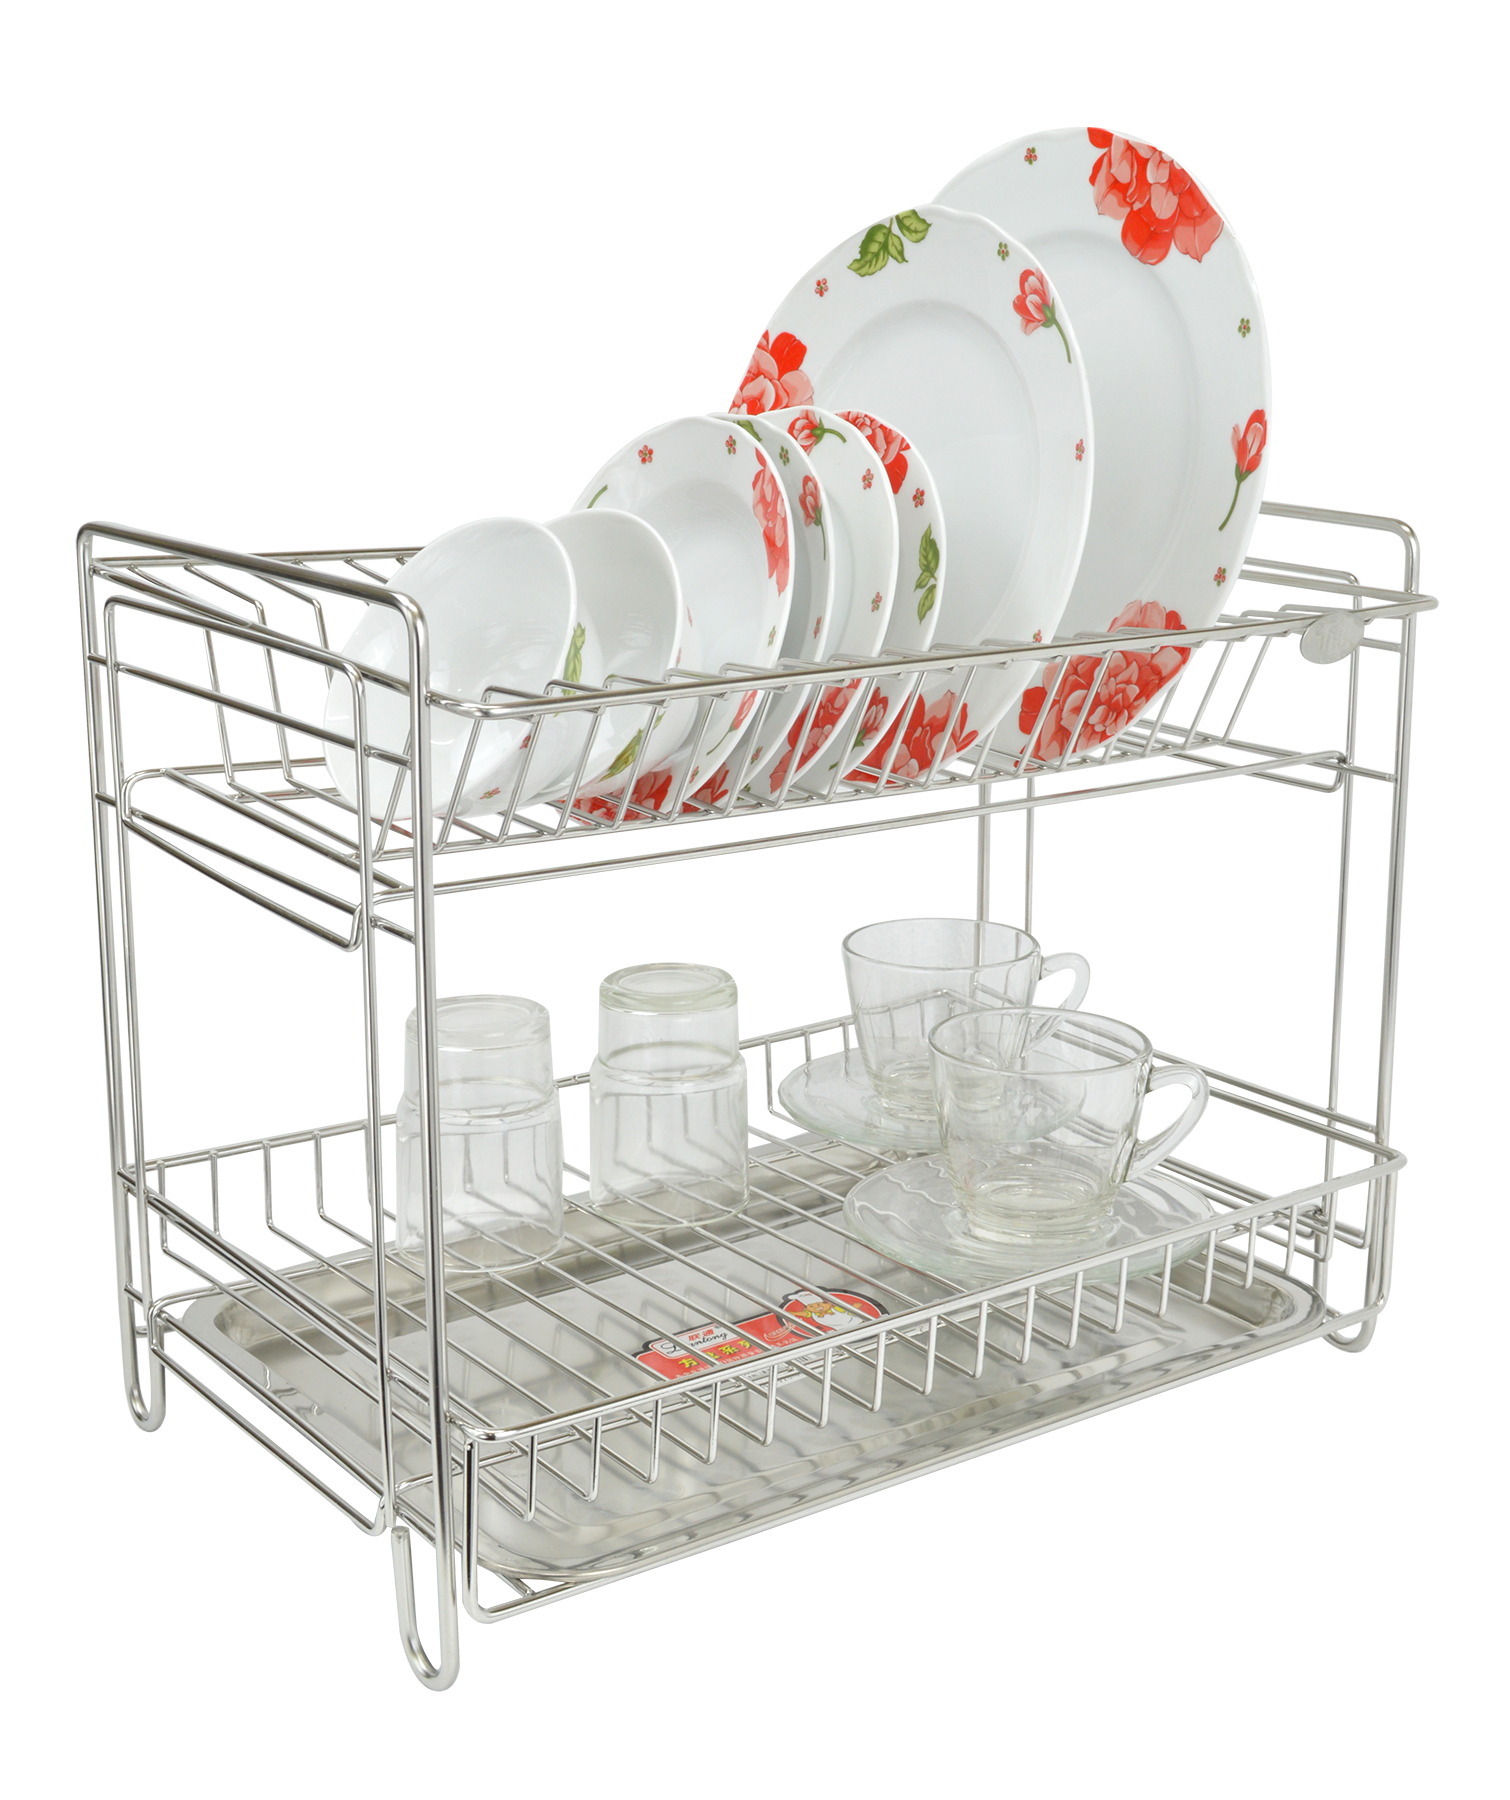 dish rack ML 212 B2 304 a.jpg